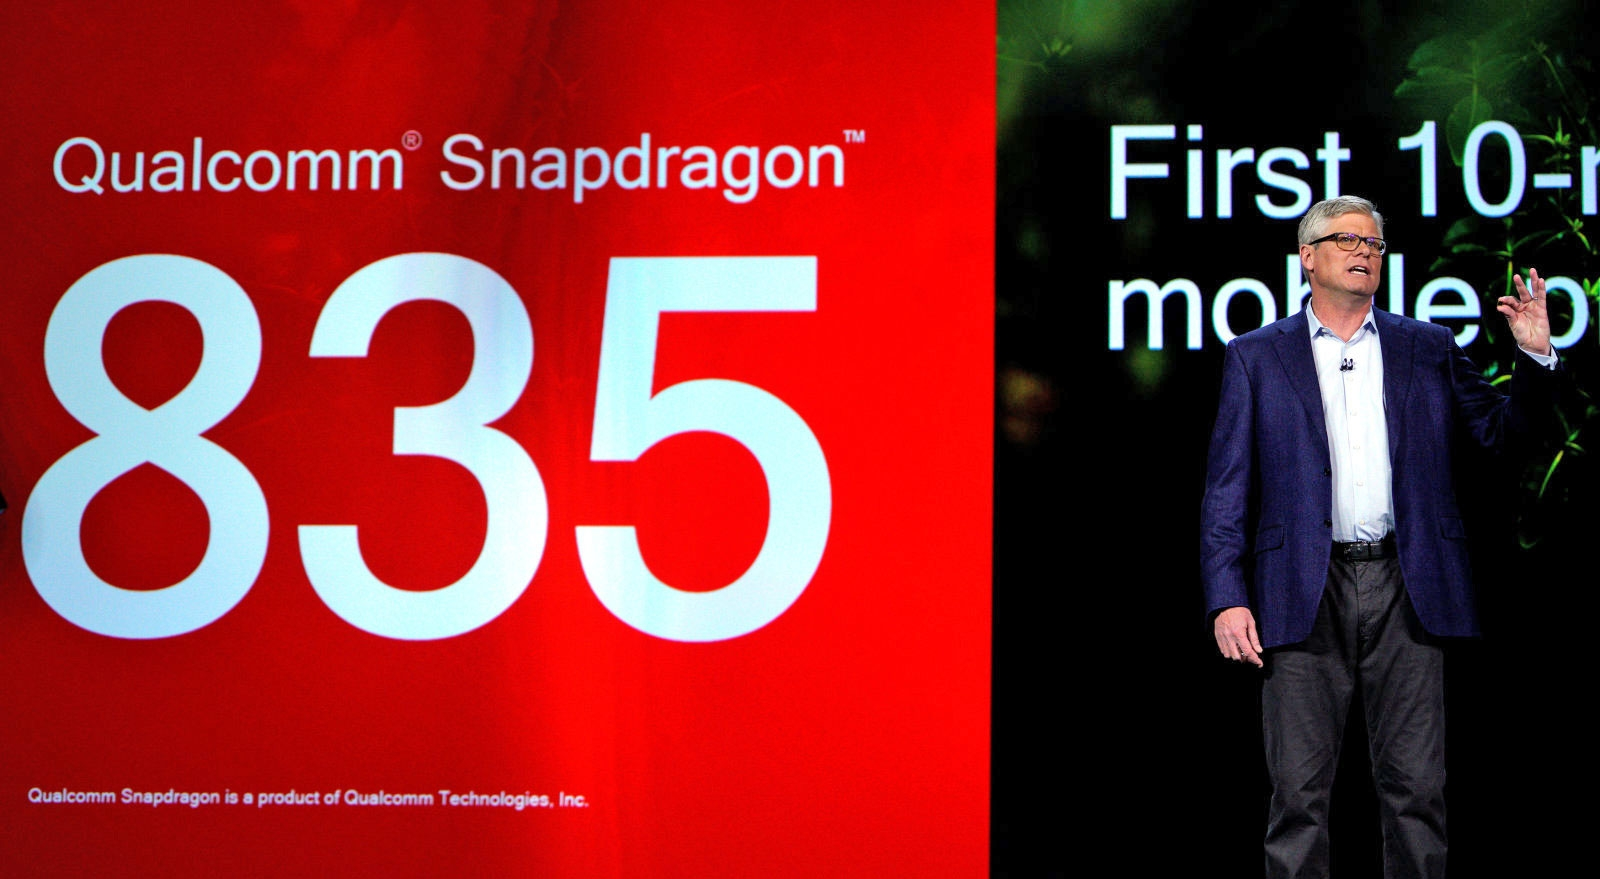 snapdragon 835 or 836